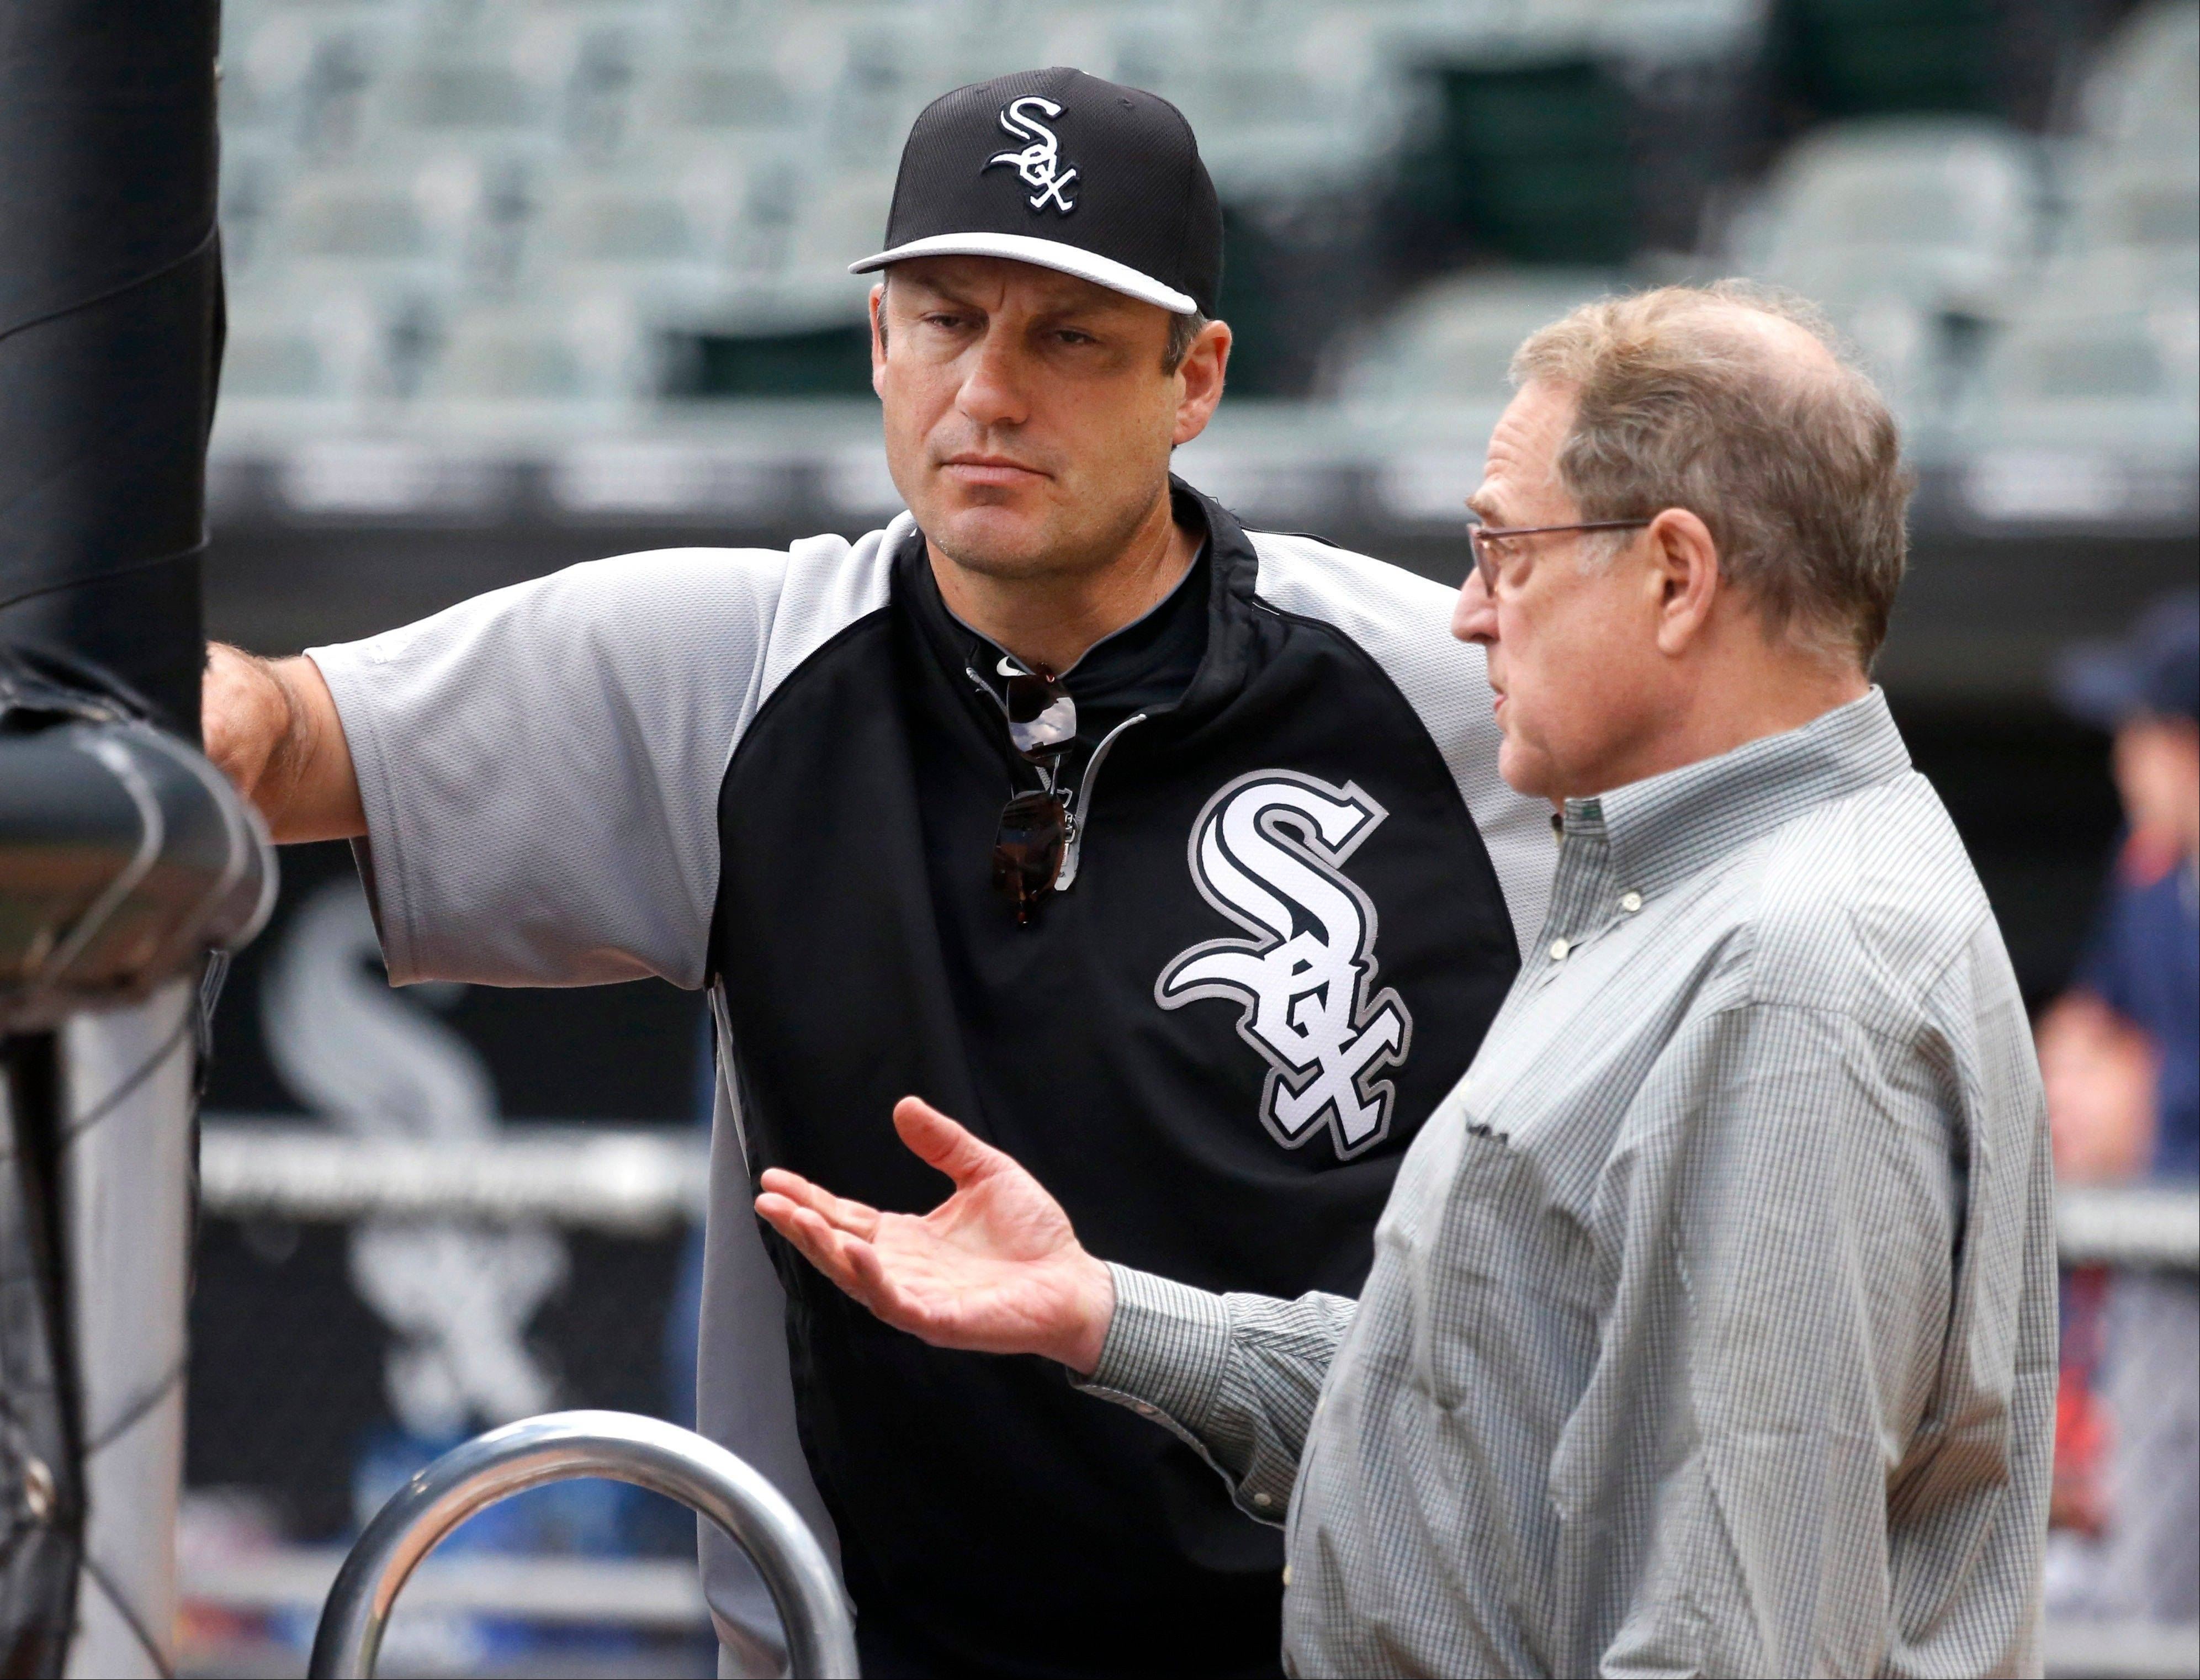 Chicago White Sox manager Robin Ventura, left, listens to club chairman Jerry Reinsdorf during batting practice before the White Sox's baseball game against the Detroit Tigers on Tuesday, July 23, 2013, in Chicago.